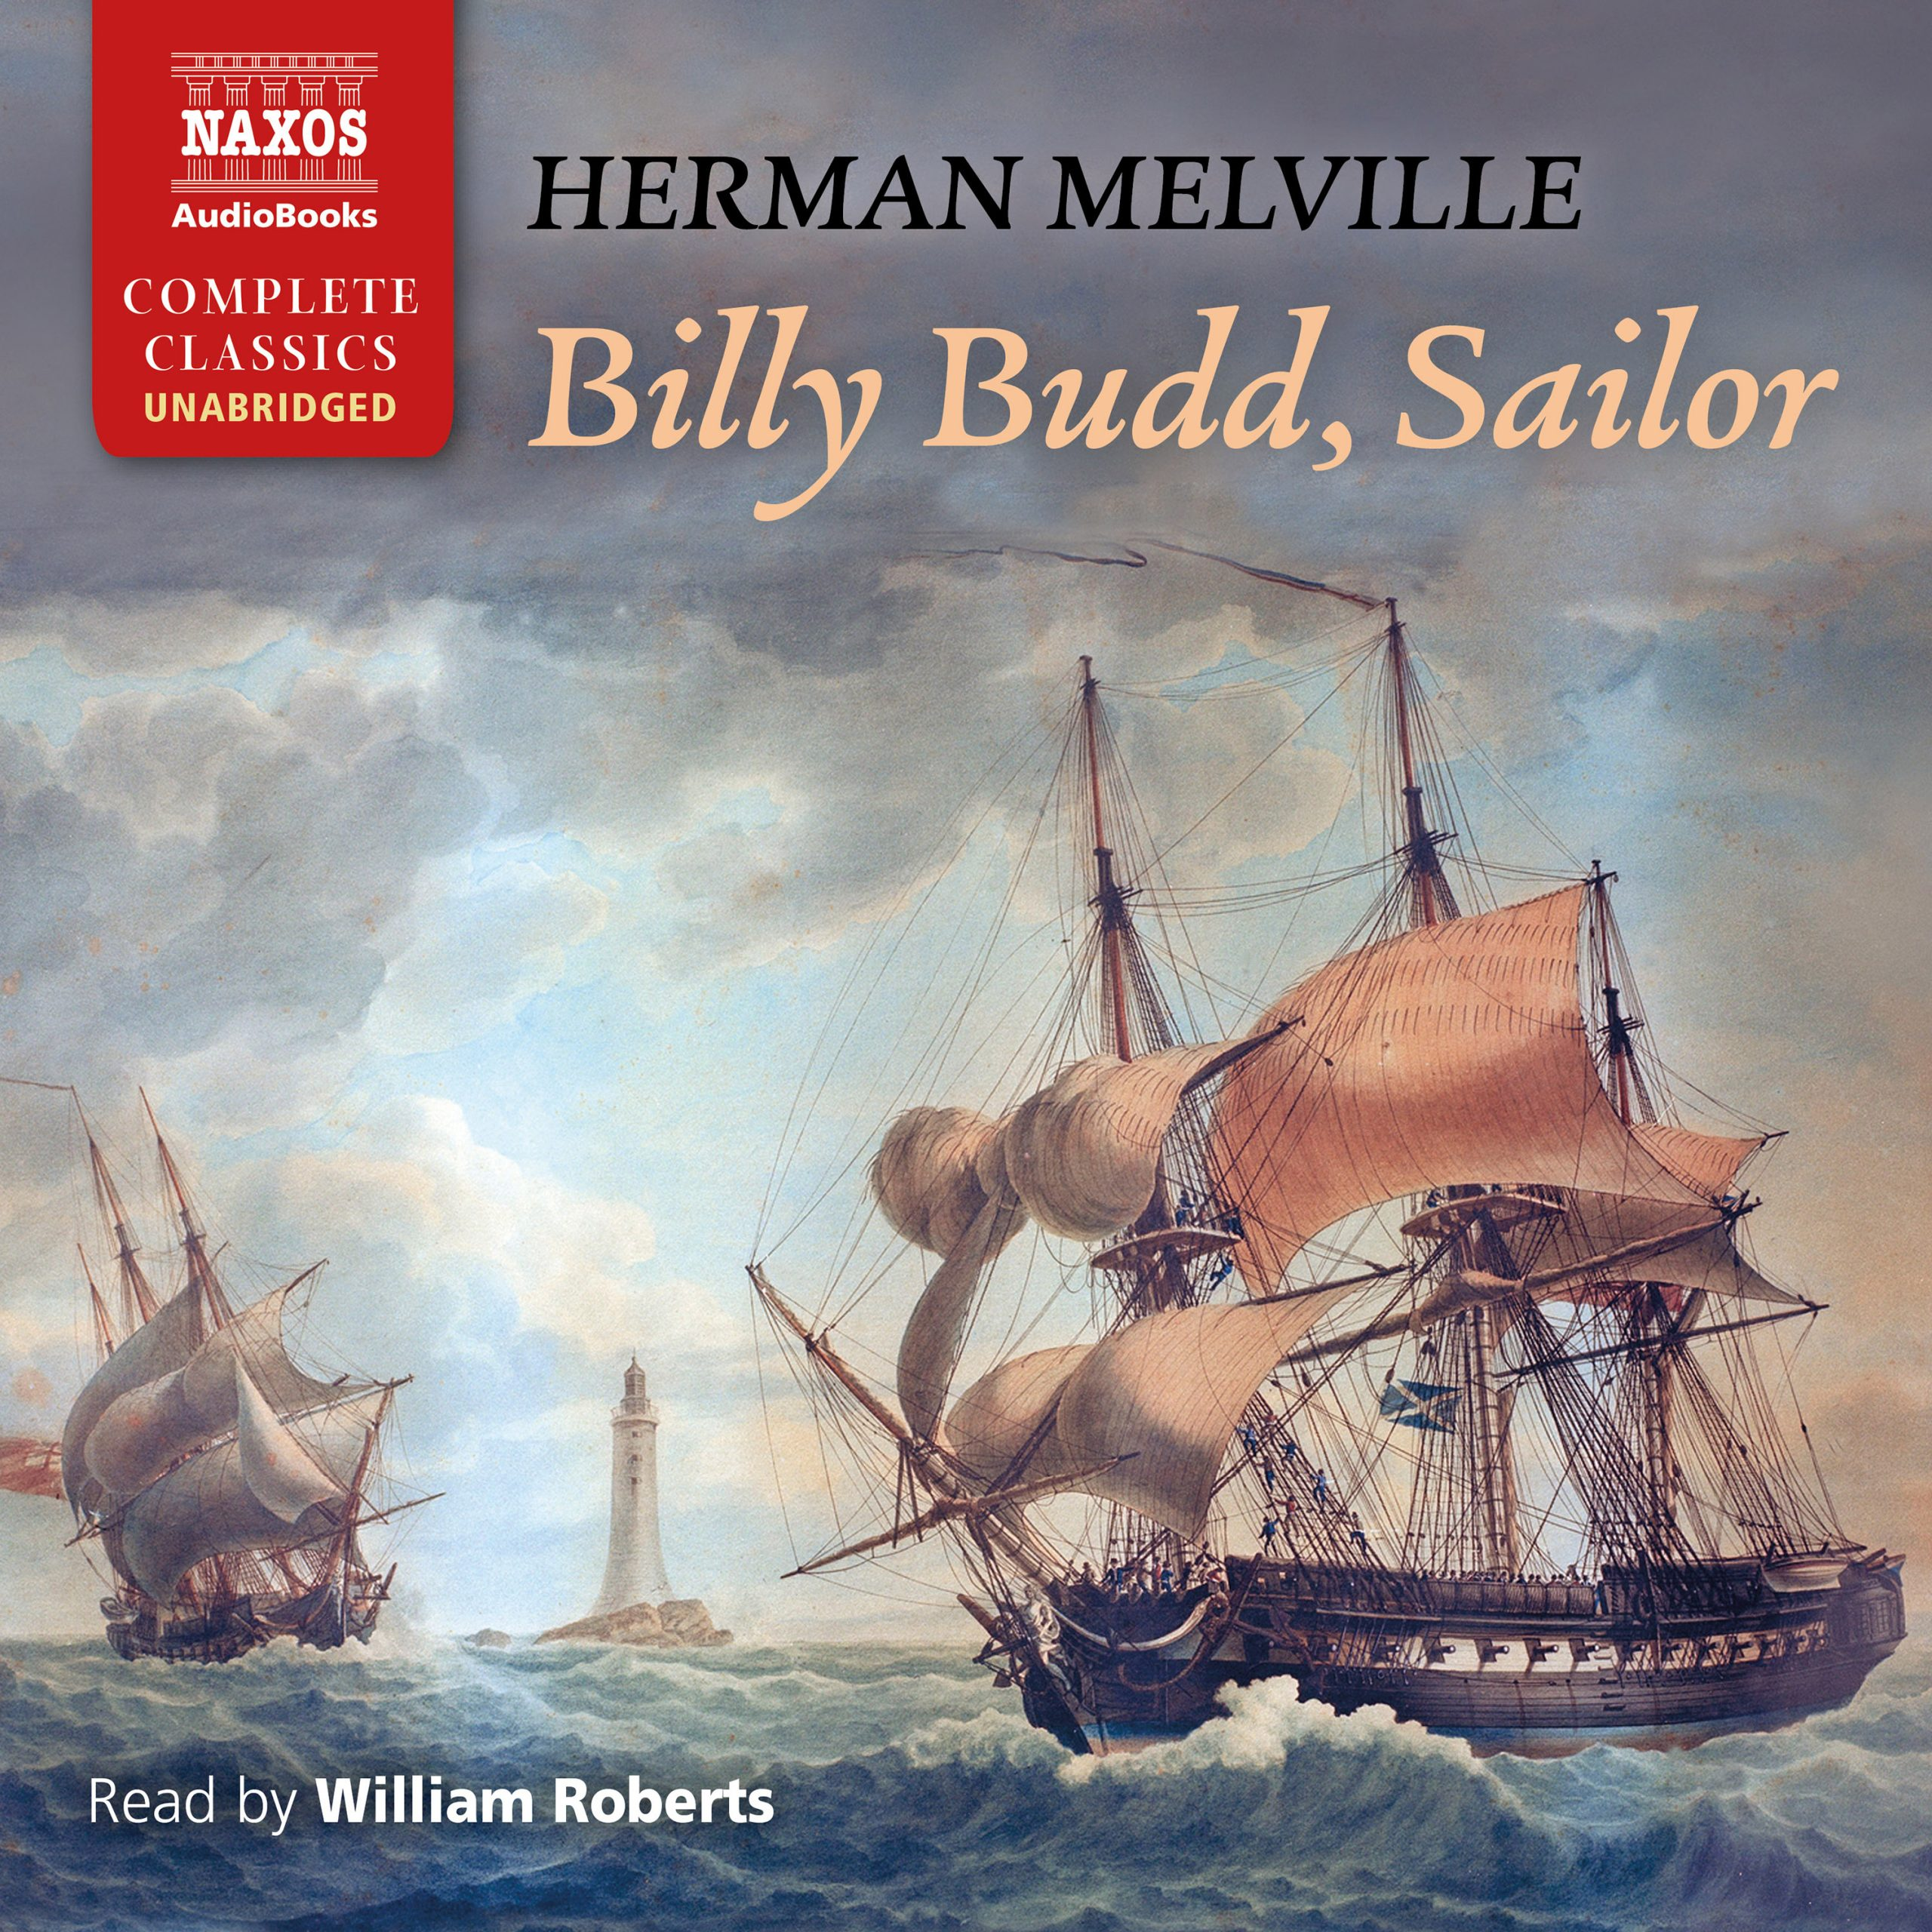 Billy Budd, Sailor (unabridged)